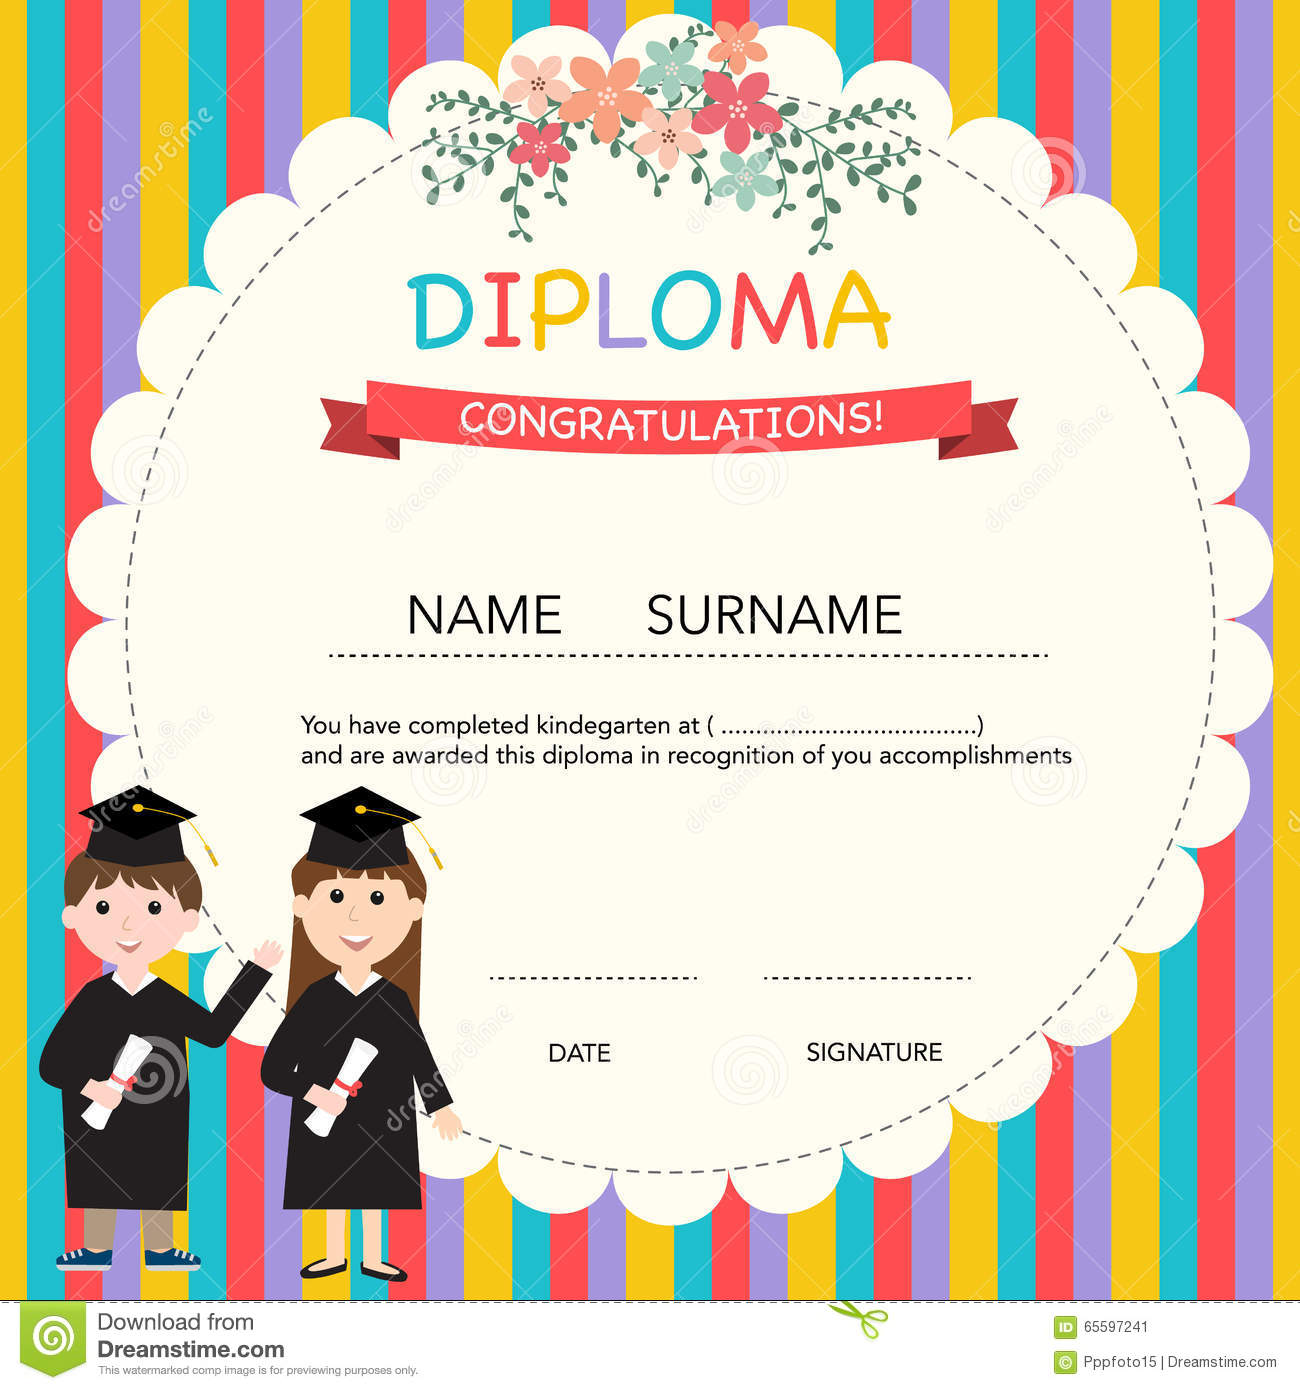 Kindergarten certificate template for preschool graduation stock certificate of kids diploma preschoolkindergarten template stock image yelopaper Image collections